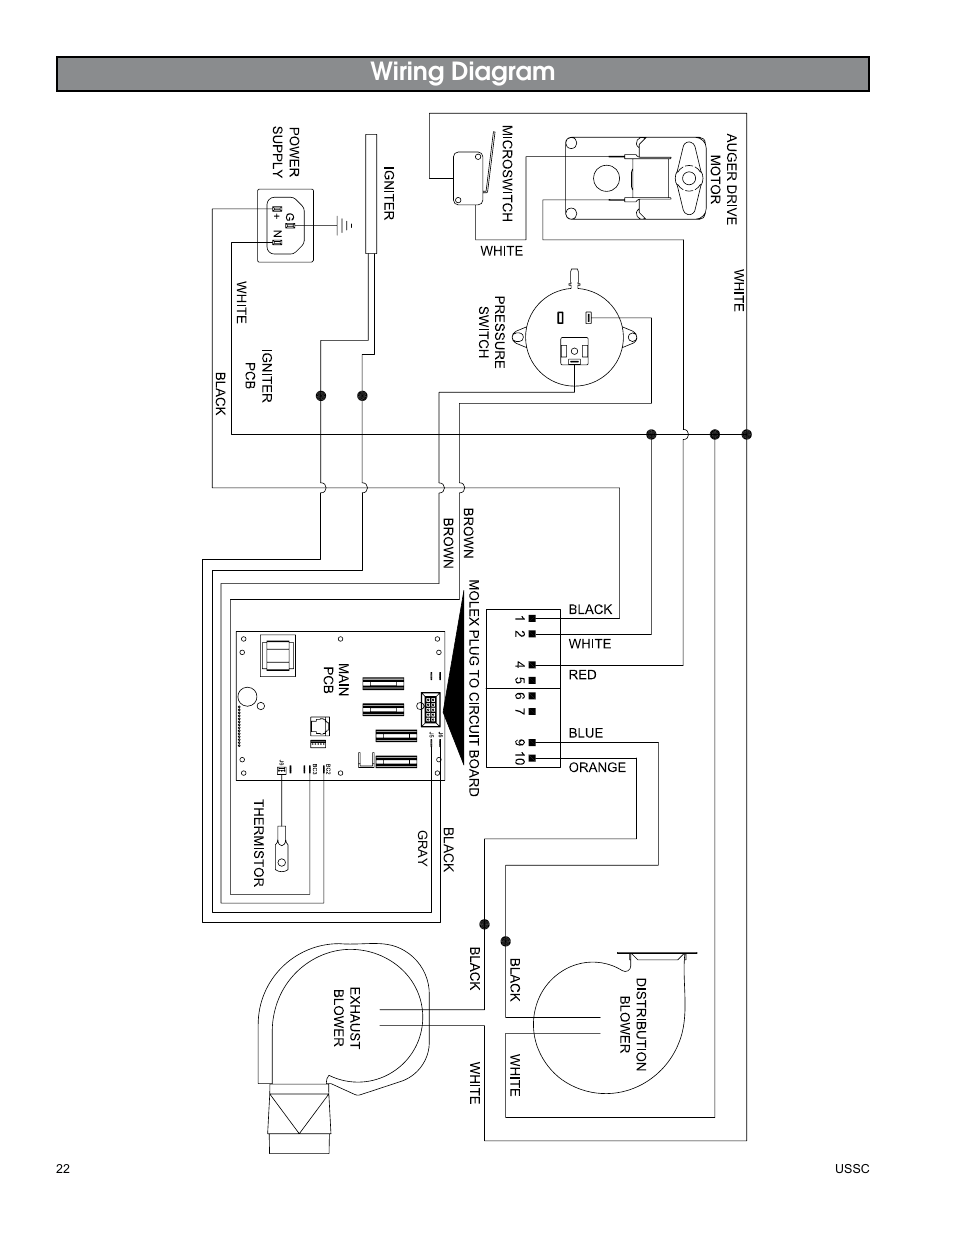 hight resolution of wiring diagram united states stove company king ashley pellet stove 5500m user manual